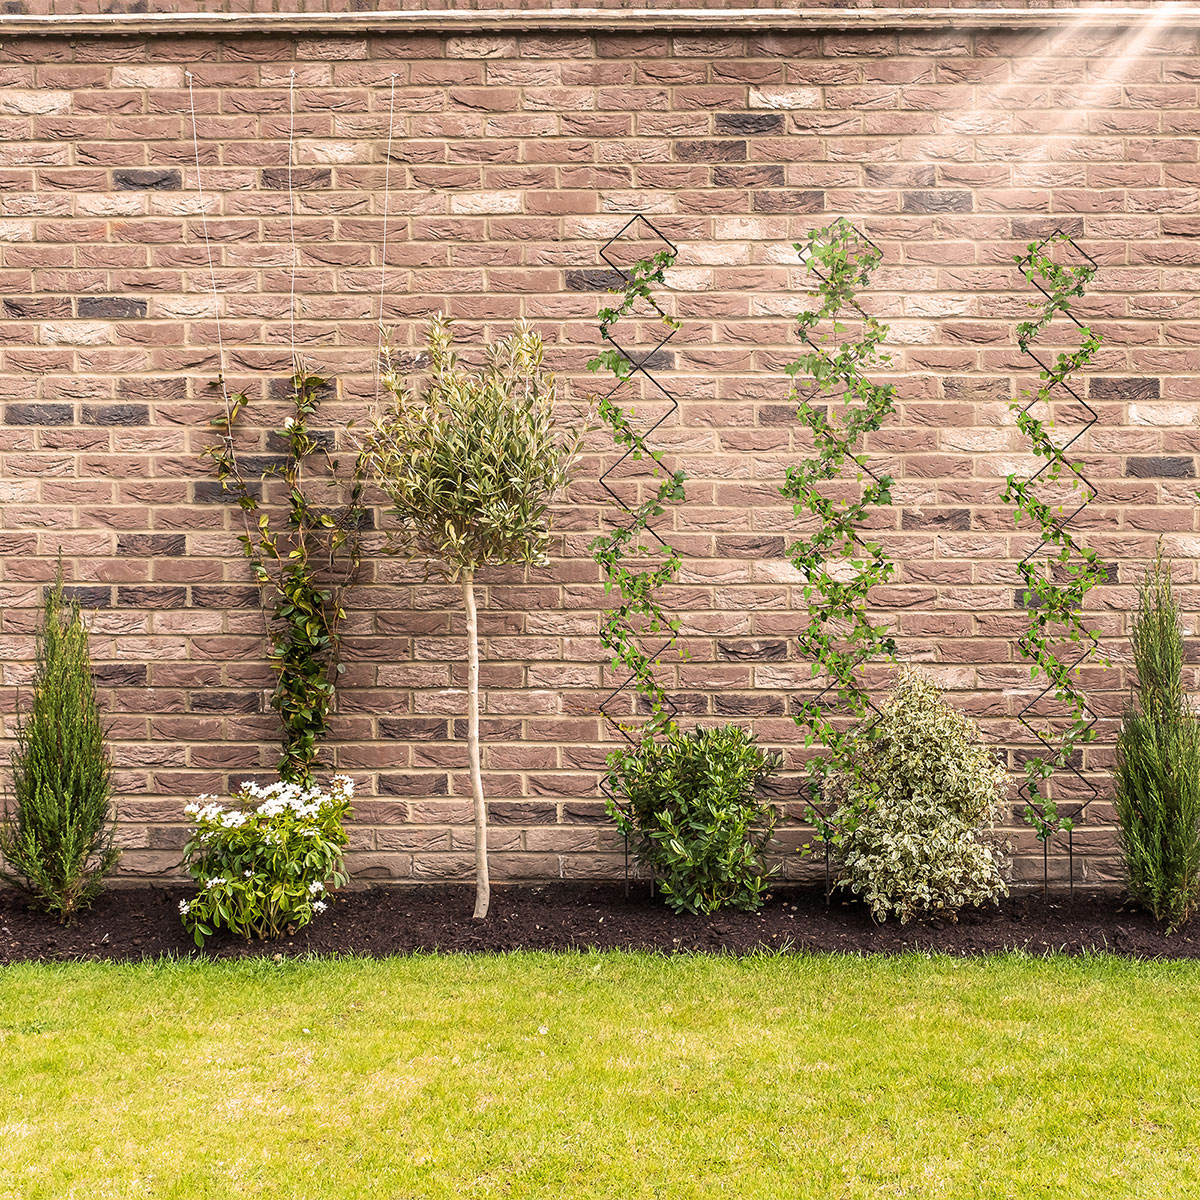 newly planted shrubs and plants against a red brick wall